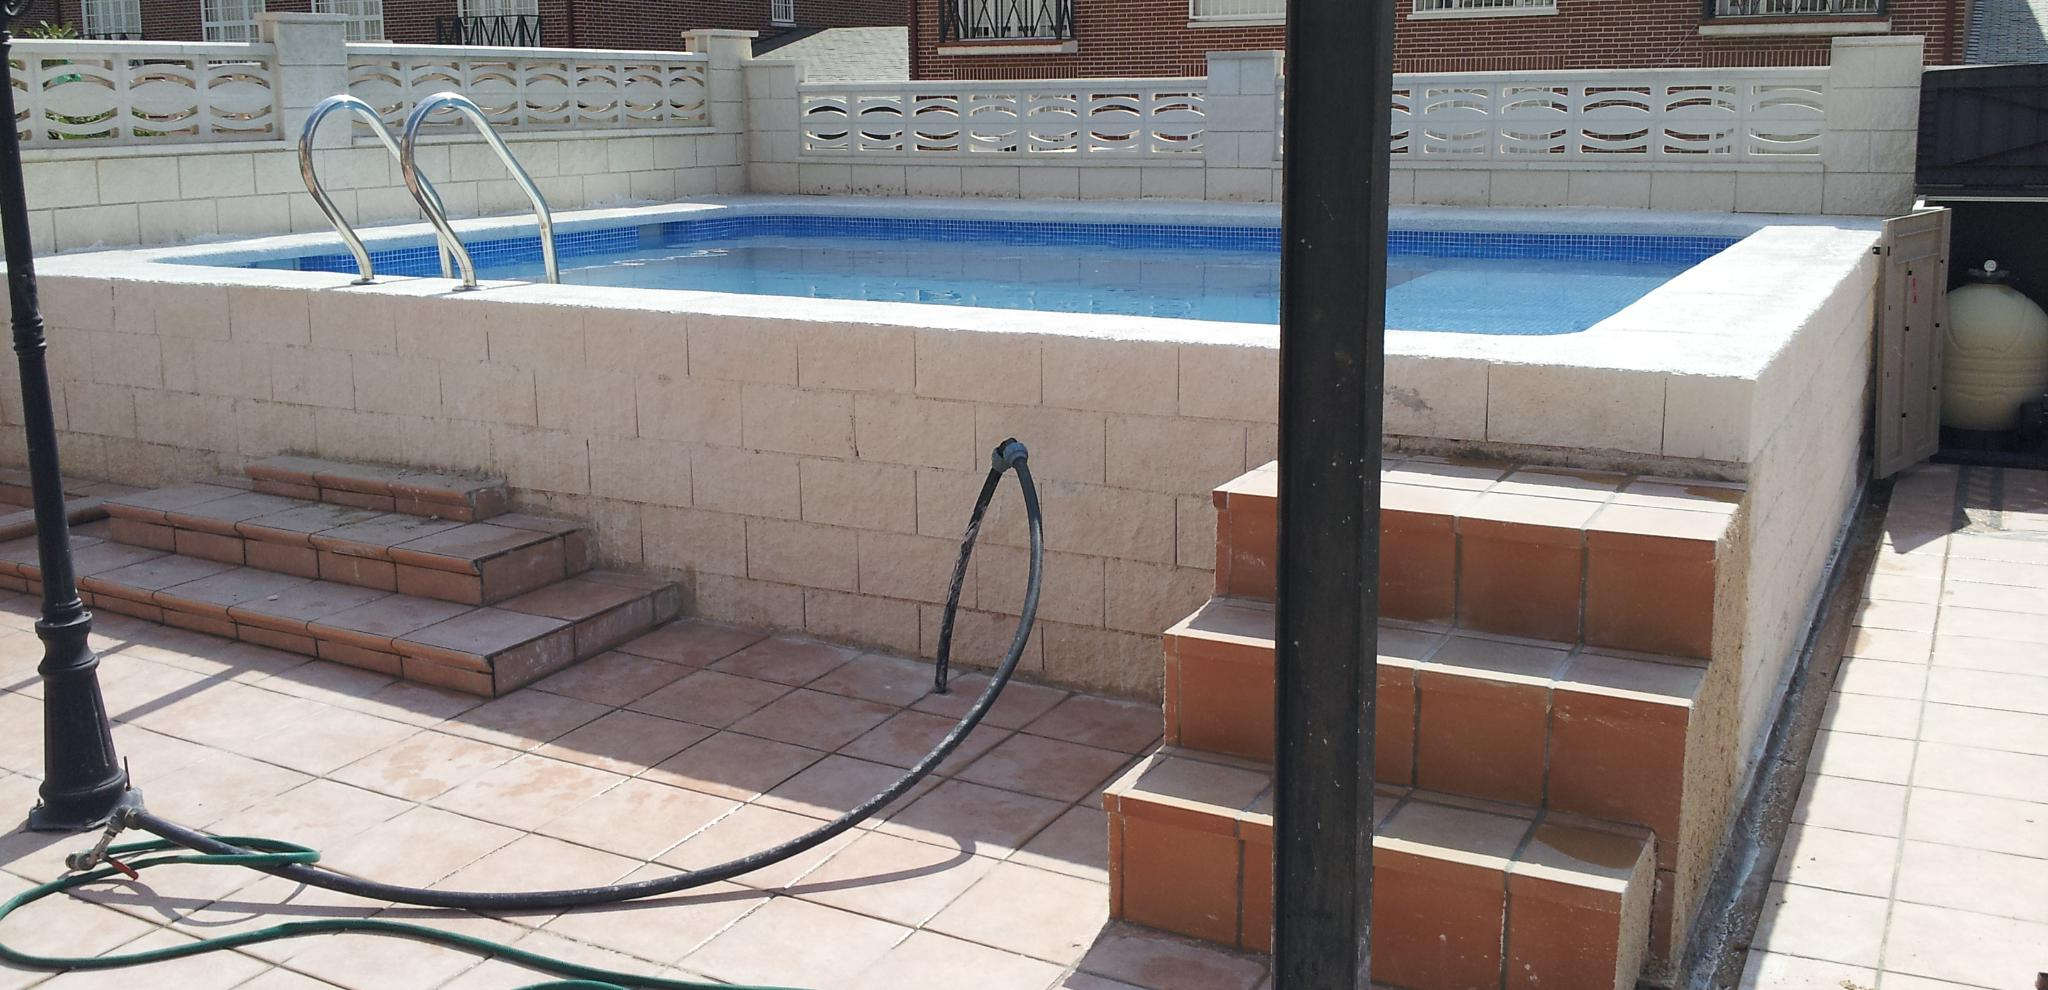 Hacer una piscina barata affordable simple jacuzzi de for Piscinas de obra baratas